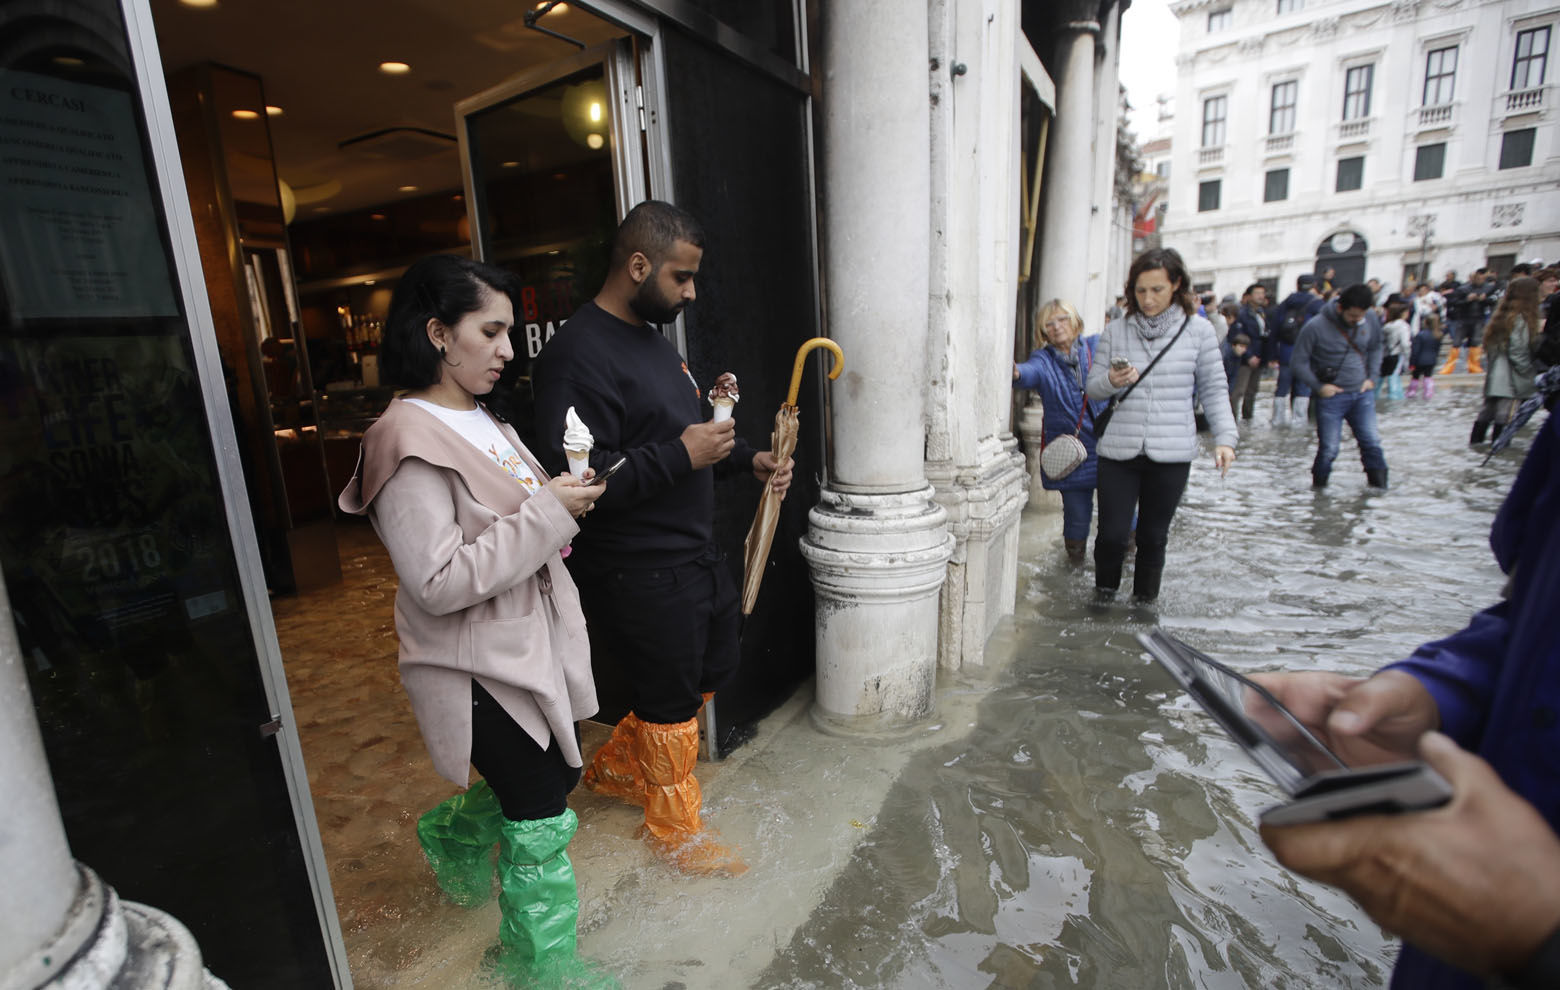 Tourists check their smartphones in flooded St. Mark's Square in Venice, Italy, Thursday, Nov. 1, 2018 as rainstorms and strong winds have been battering the country. Two people were killed when a falling tree crushed their car in the mountainous countryside in northwestern Italy, as rainstorms and strong winds continued to pummel much of the country. (AP Photo/Luca Bruno)